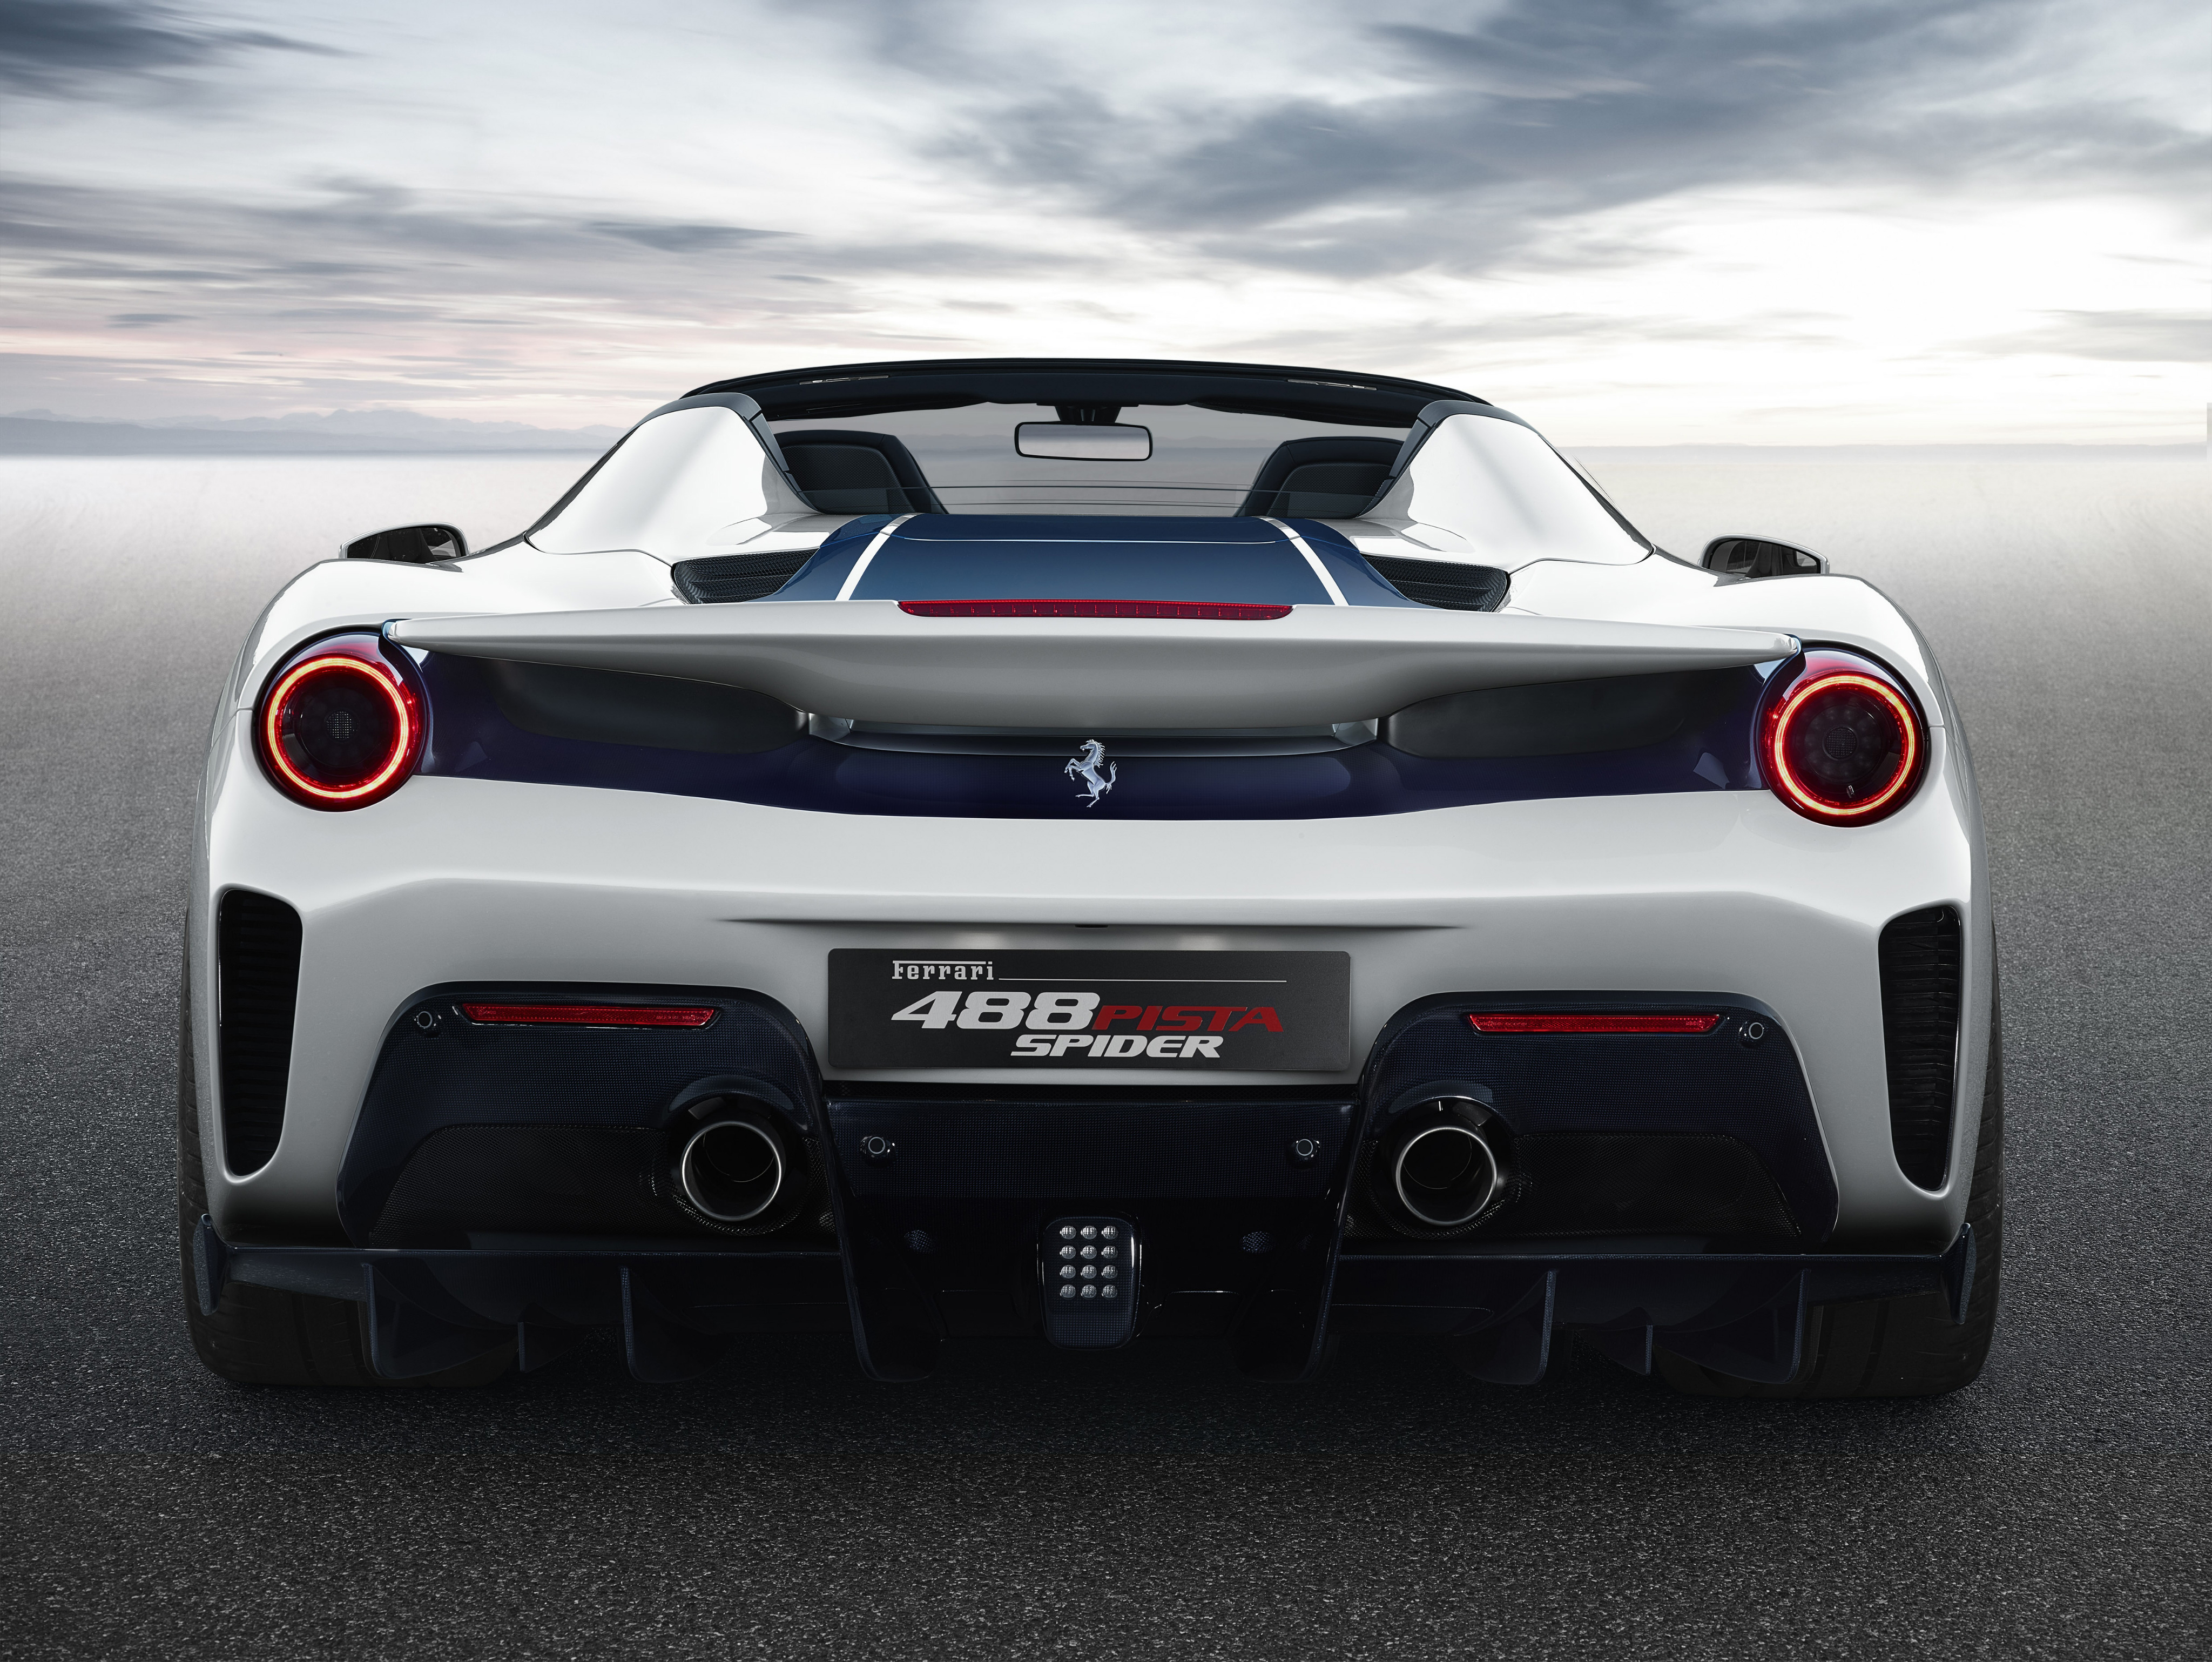 2018 Ferrari 488 Pista Spider Rear Hd Cars 4k Wallpapers Images Backgrounds Photos And Pictures